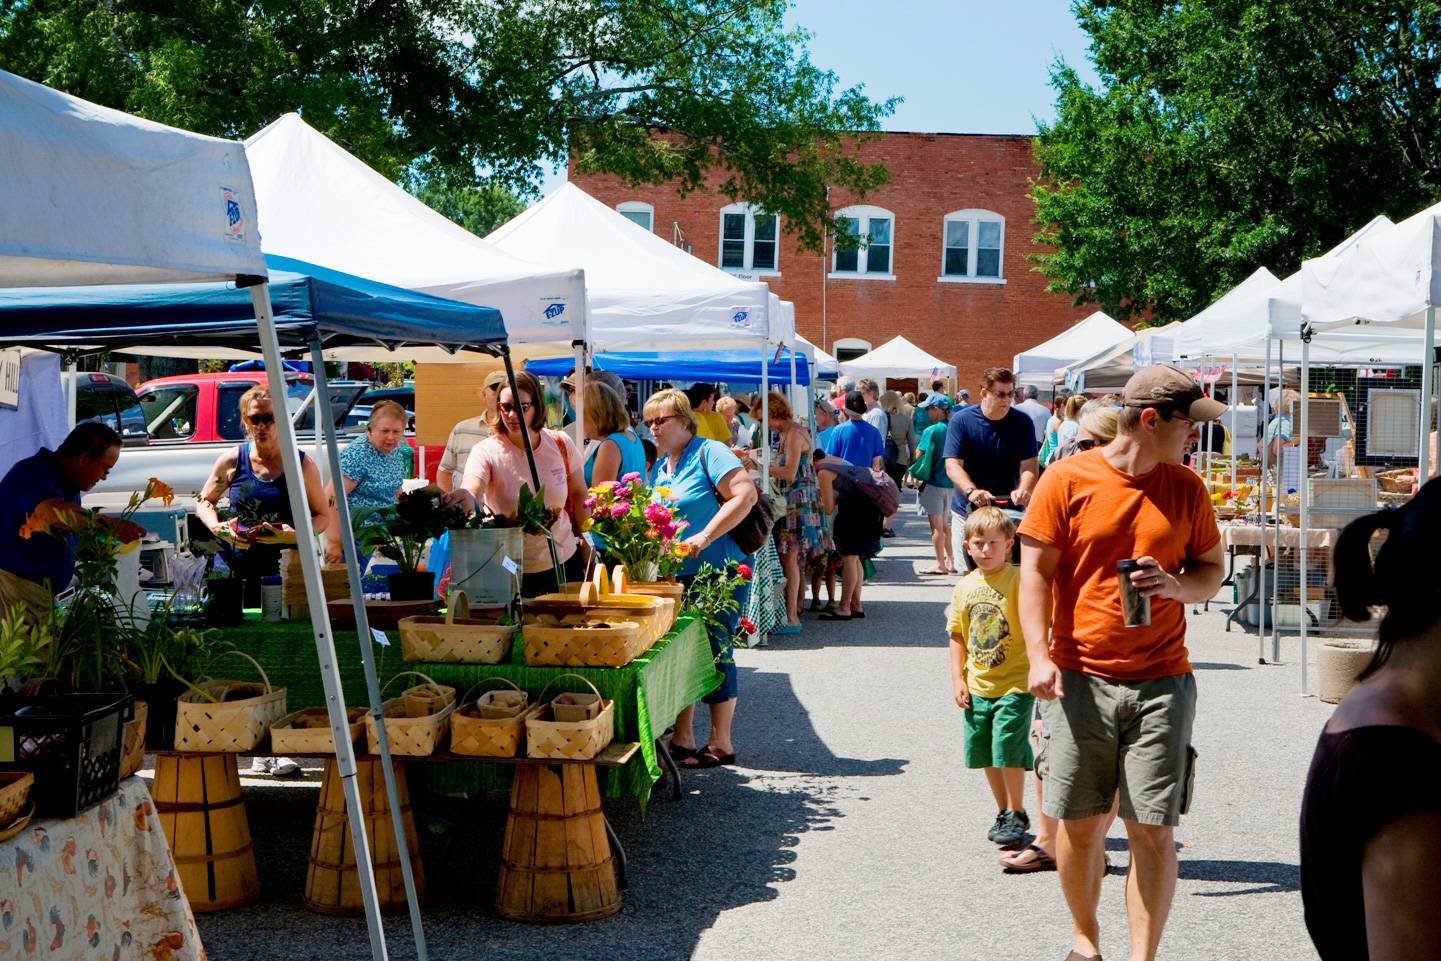 Wake Forest offers many community festivals, art showings, garden and historic home tours, special events and a thriving farmers market.  —VIEW —